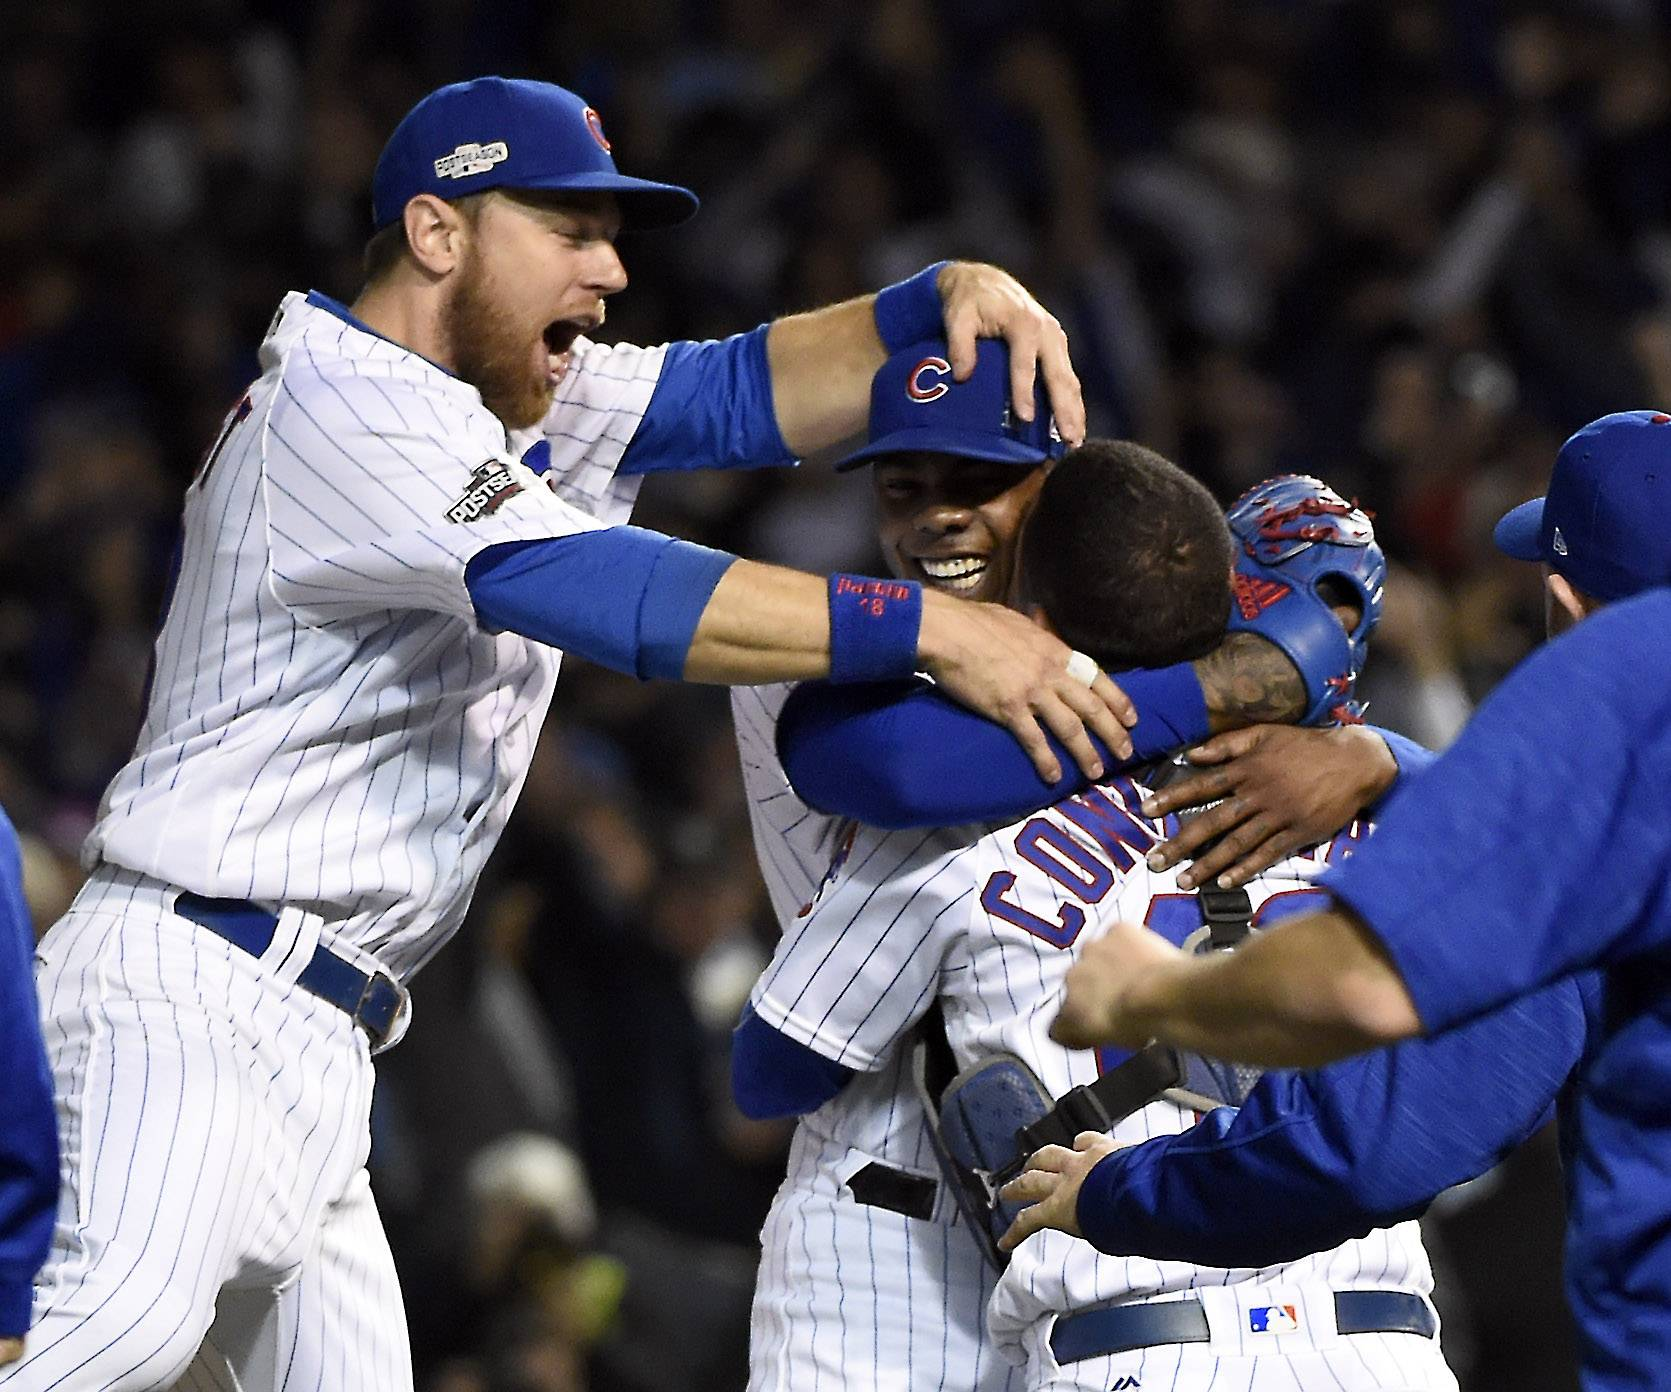 Images: Cubs win Game 6 of the NLCS 5-0 to advance to the World Series